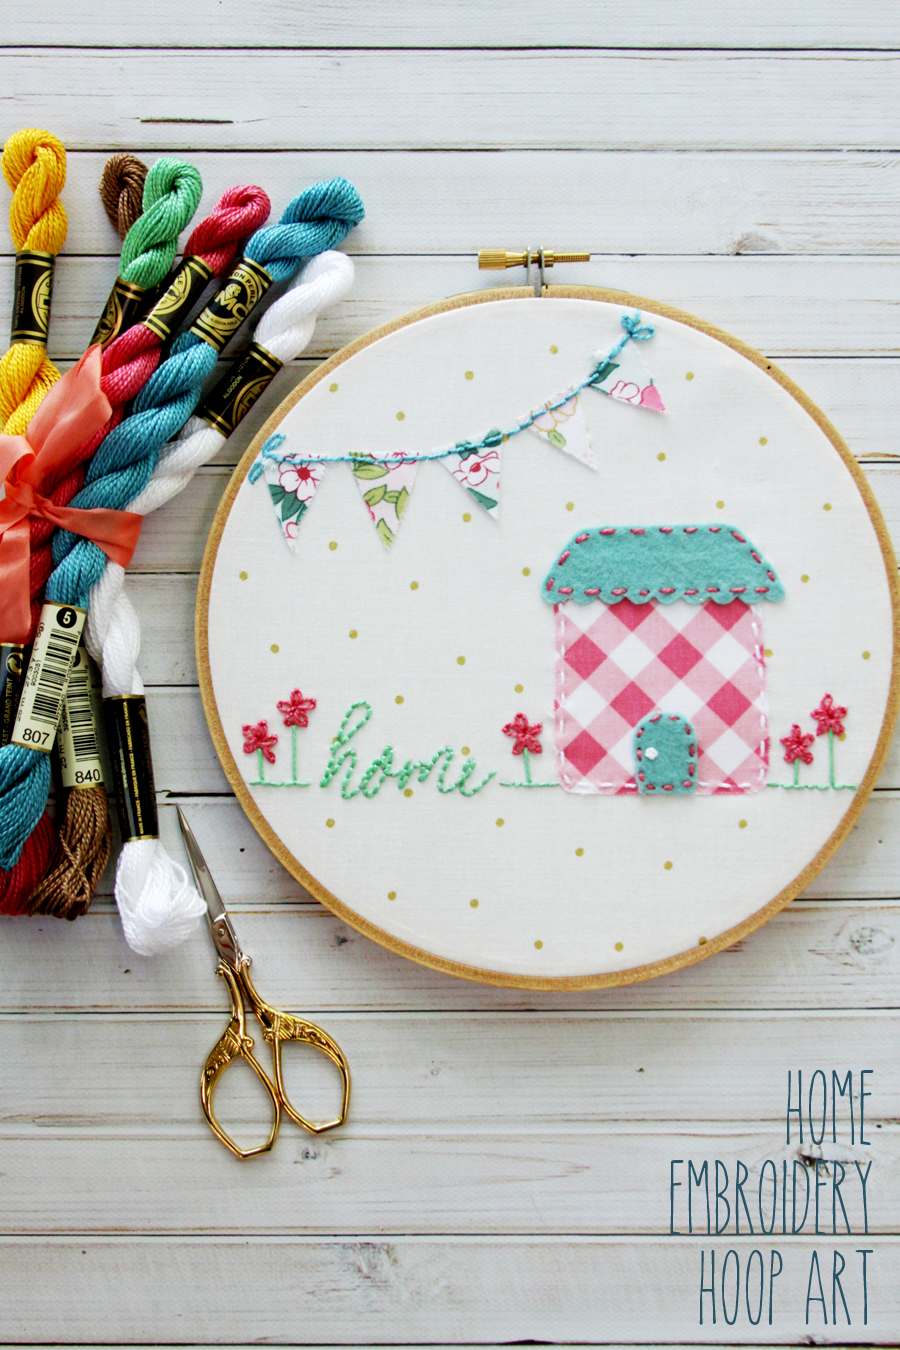 Sweet Home Embroidery Hoop Art with Free Pattern